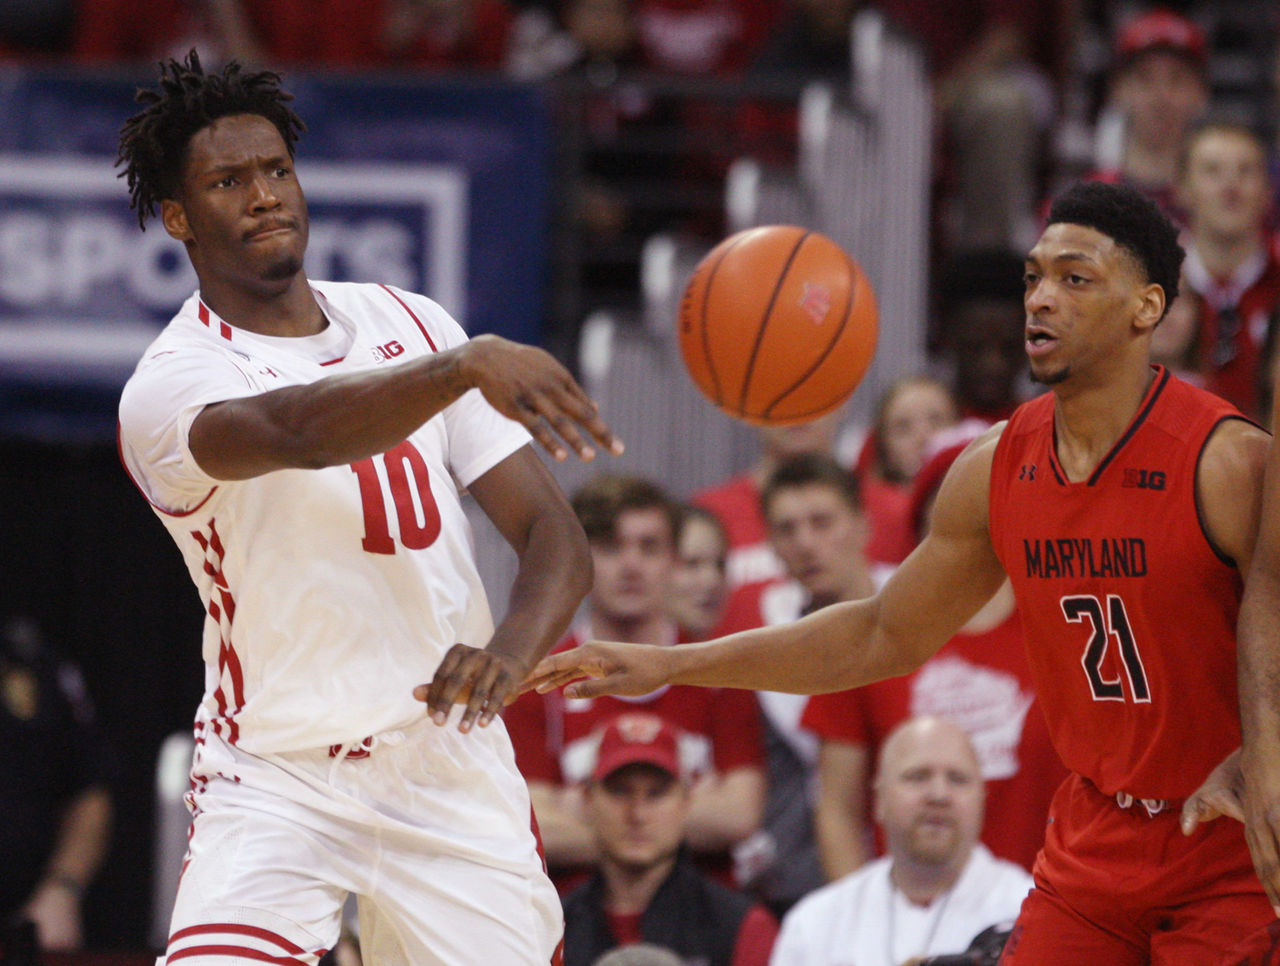 Cropped_2017-02-19t192453z_404744975_nocid_rtrmadp_3_ncaa-basketball-maryland-at-wisconsin